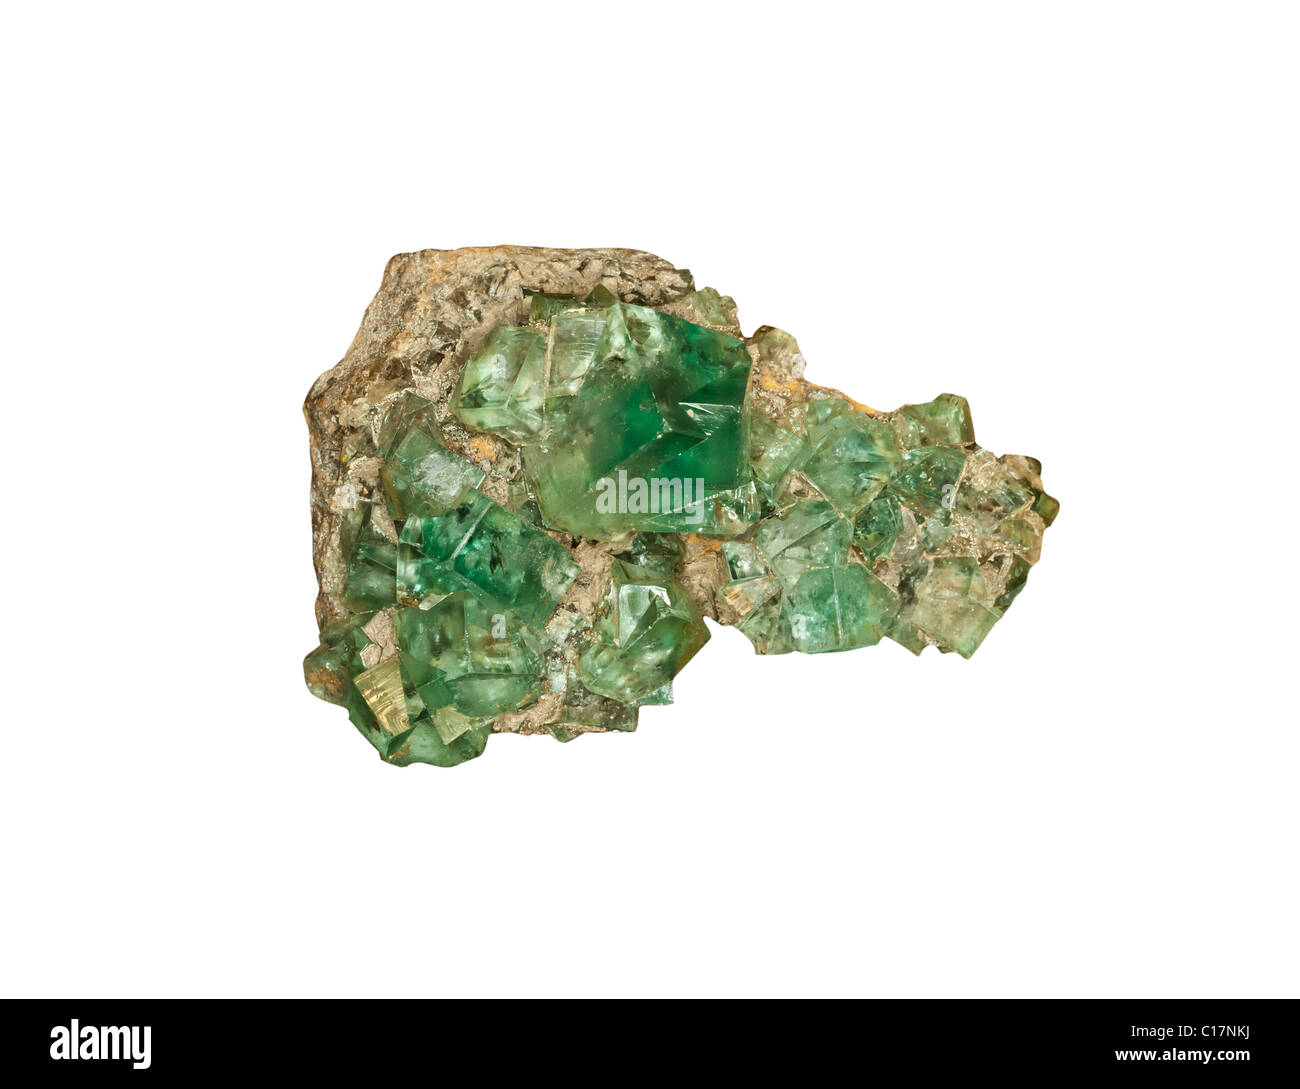 Green Fluorite from County Durham UK - Stock Image